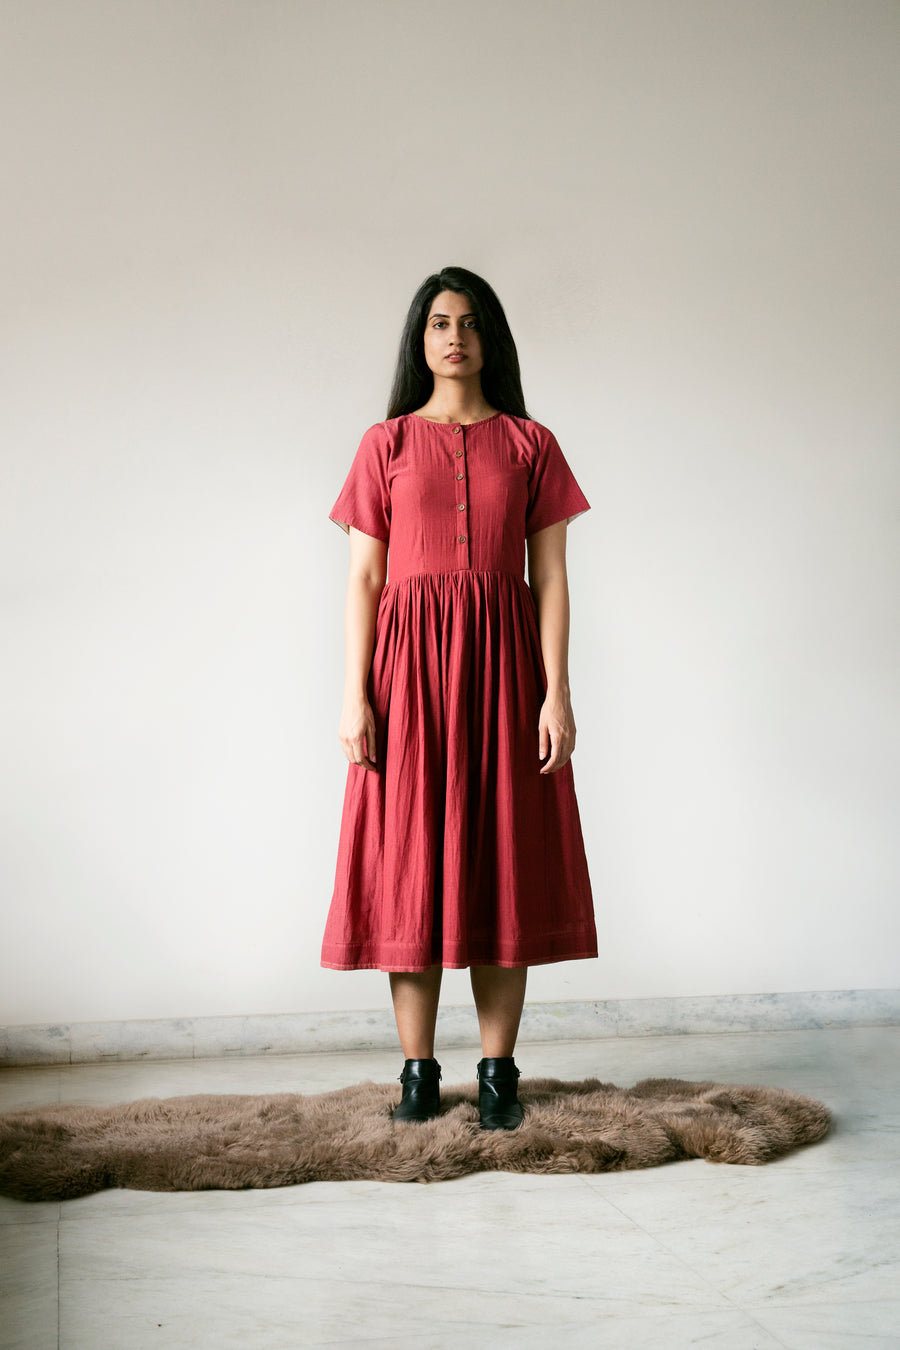 Cancel the Day Midi Dress - onlyethikal